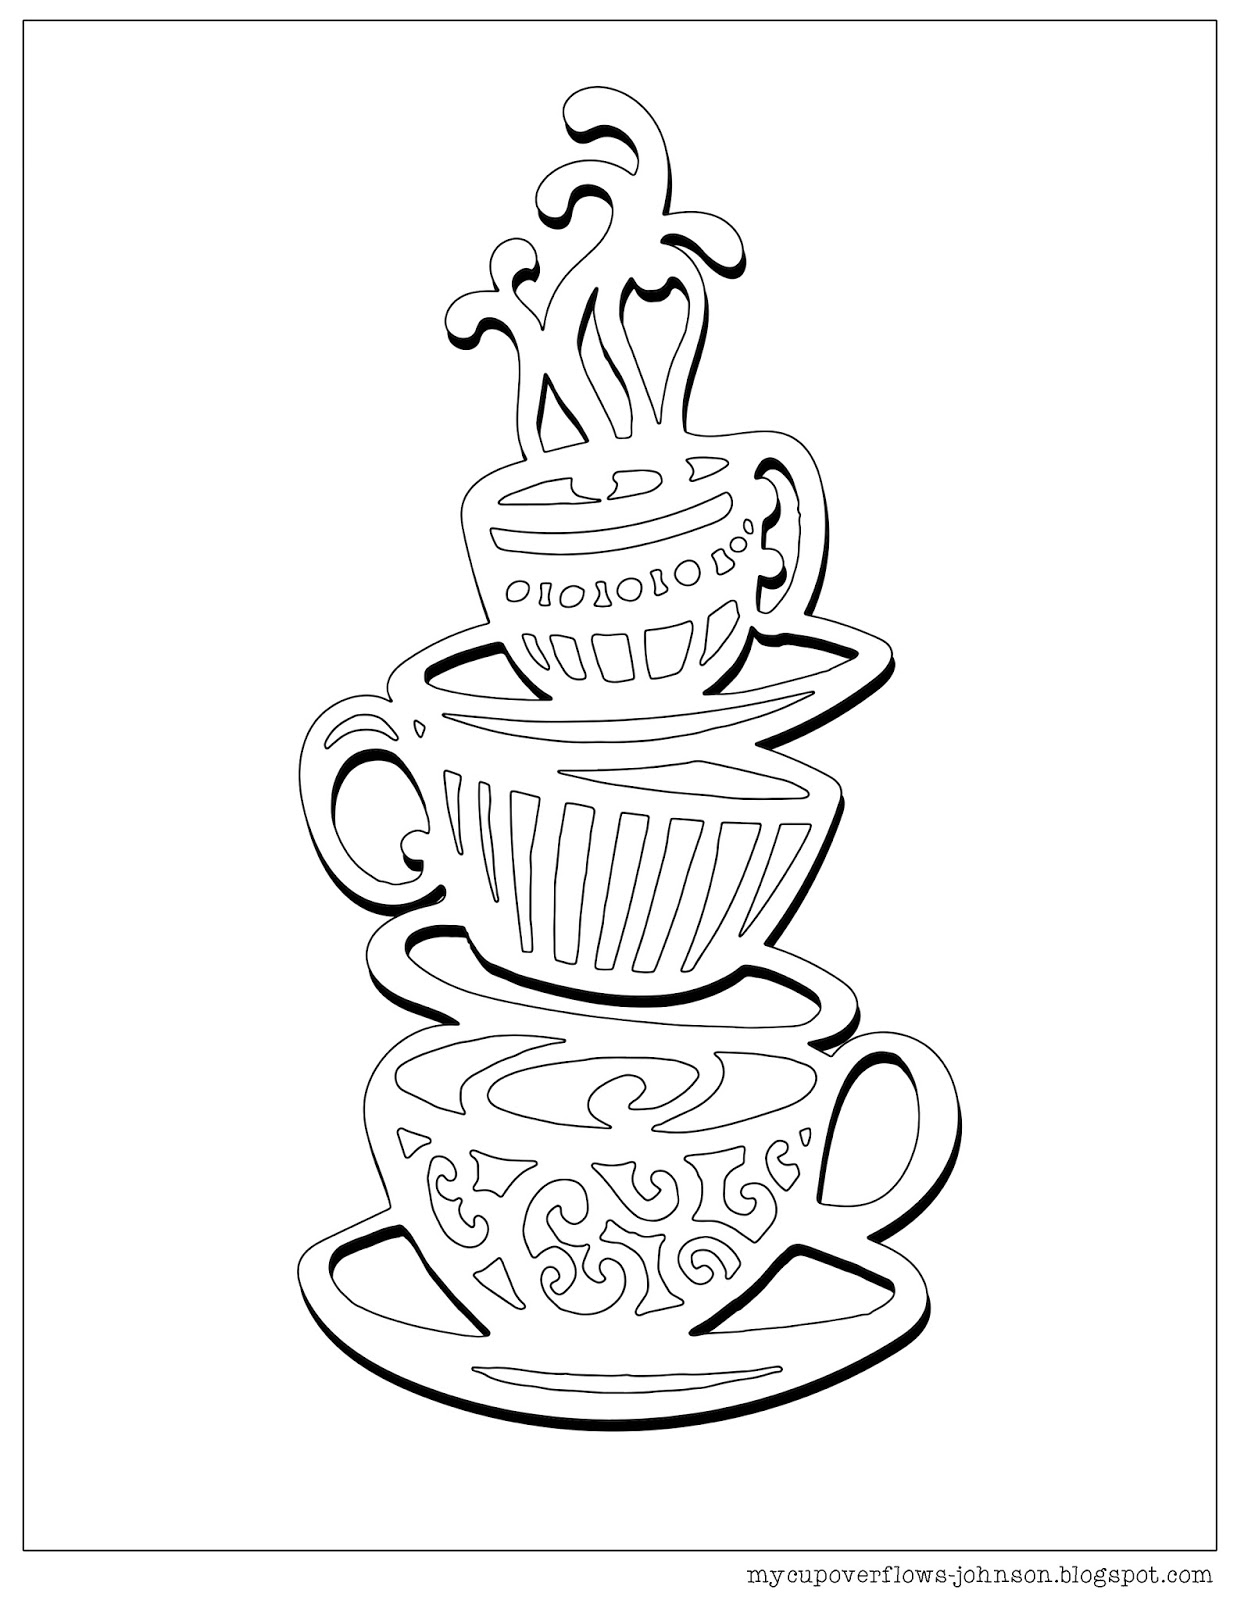 cup coloring page my cup overflows tea and coffee cup coloring page